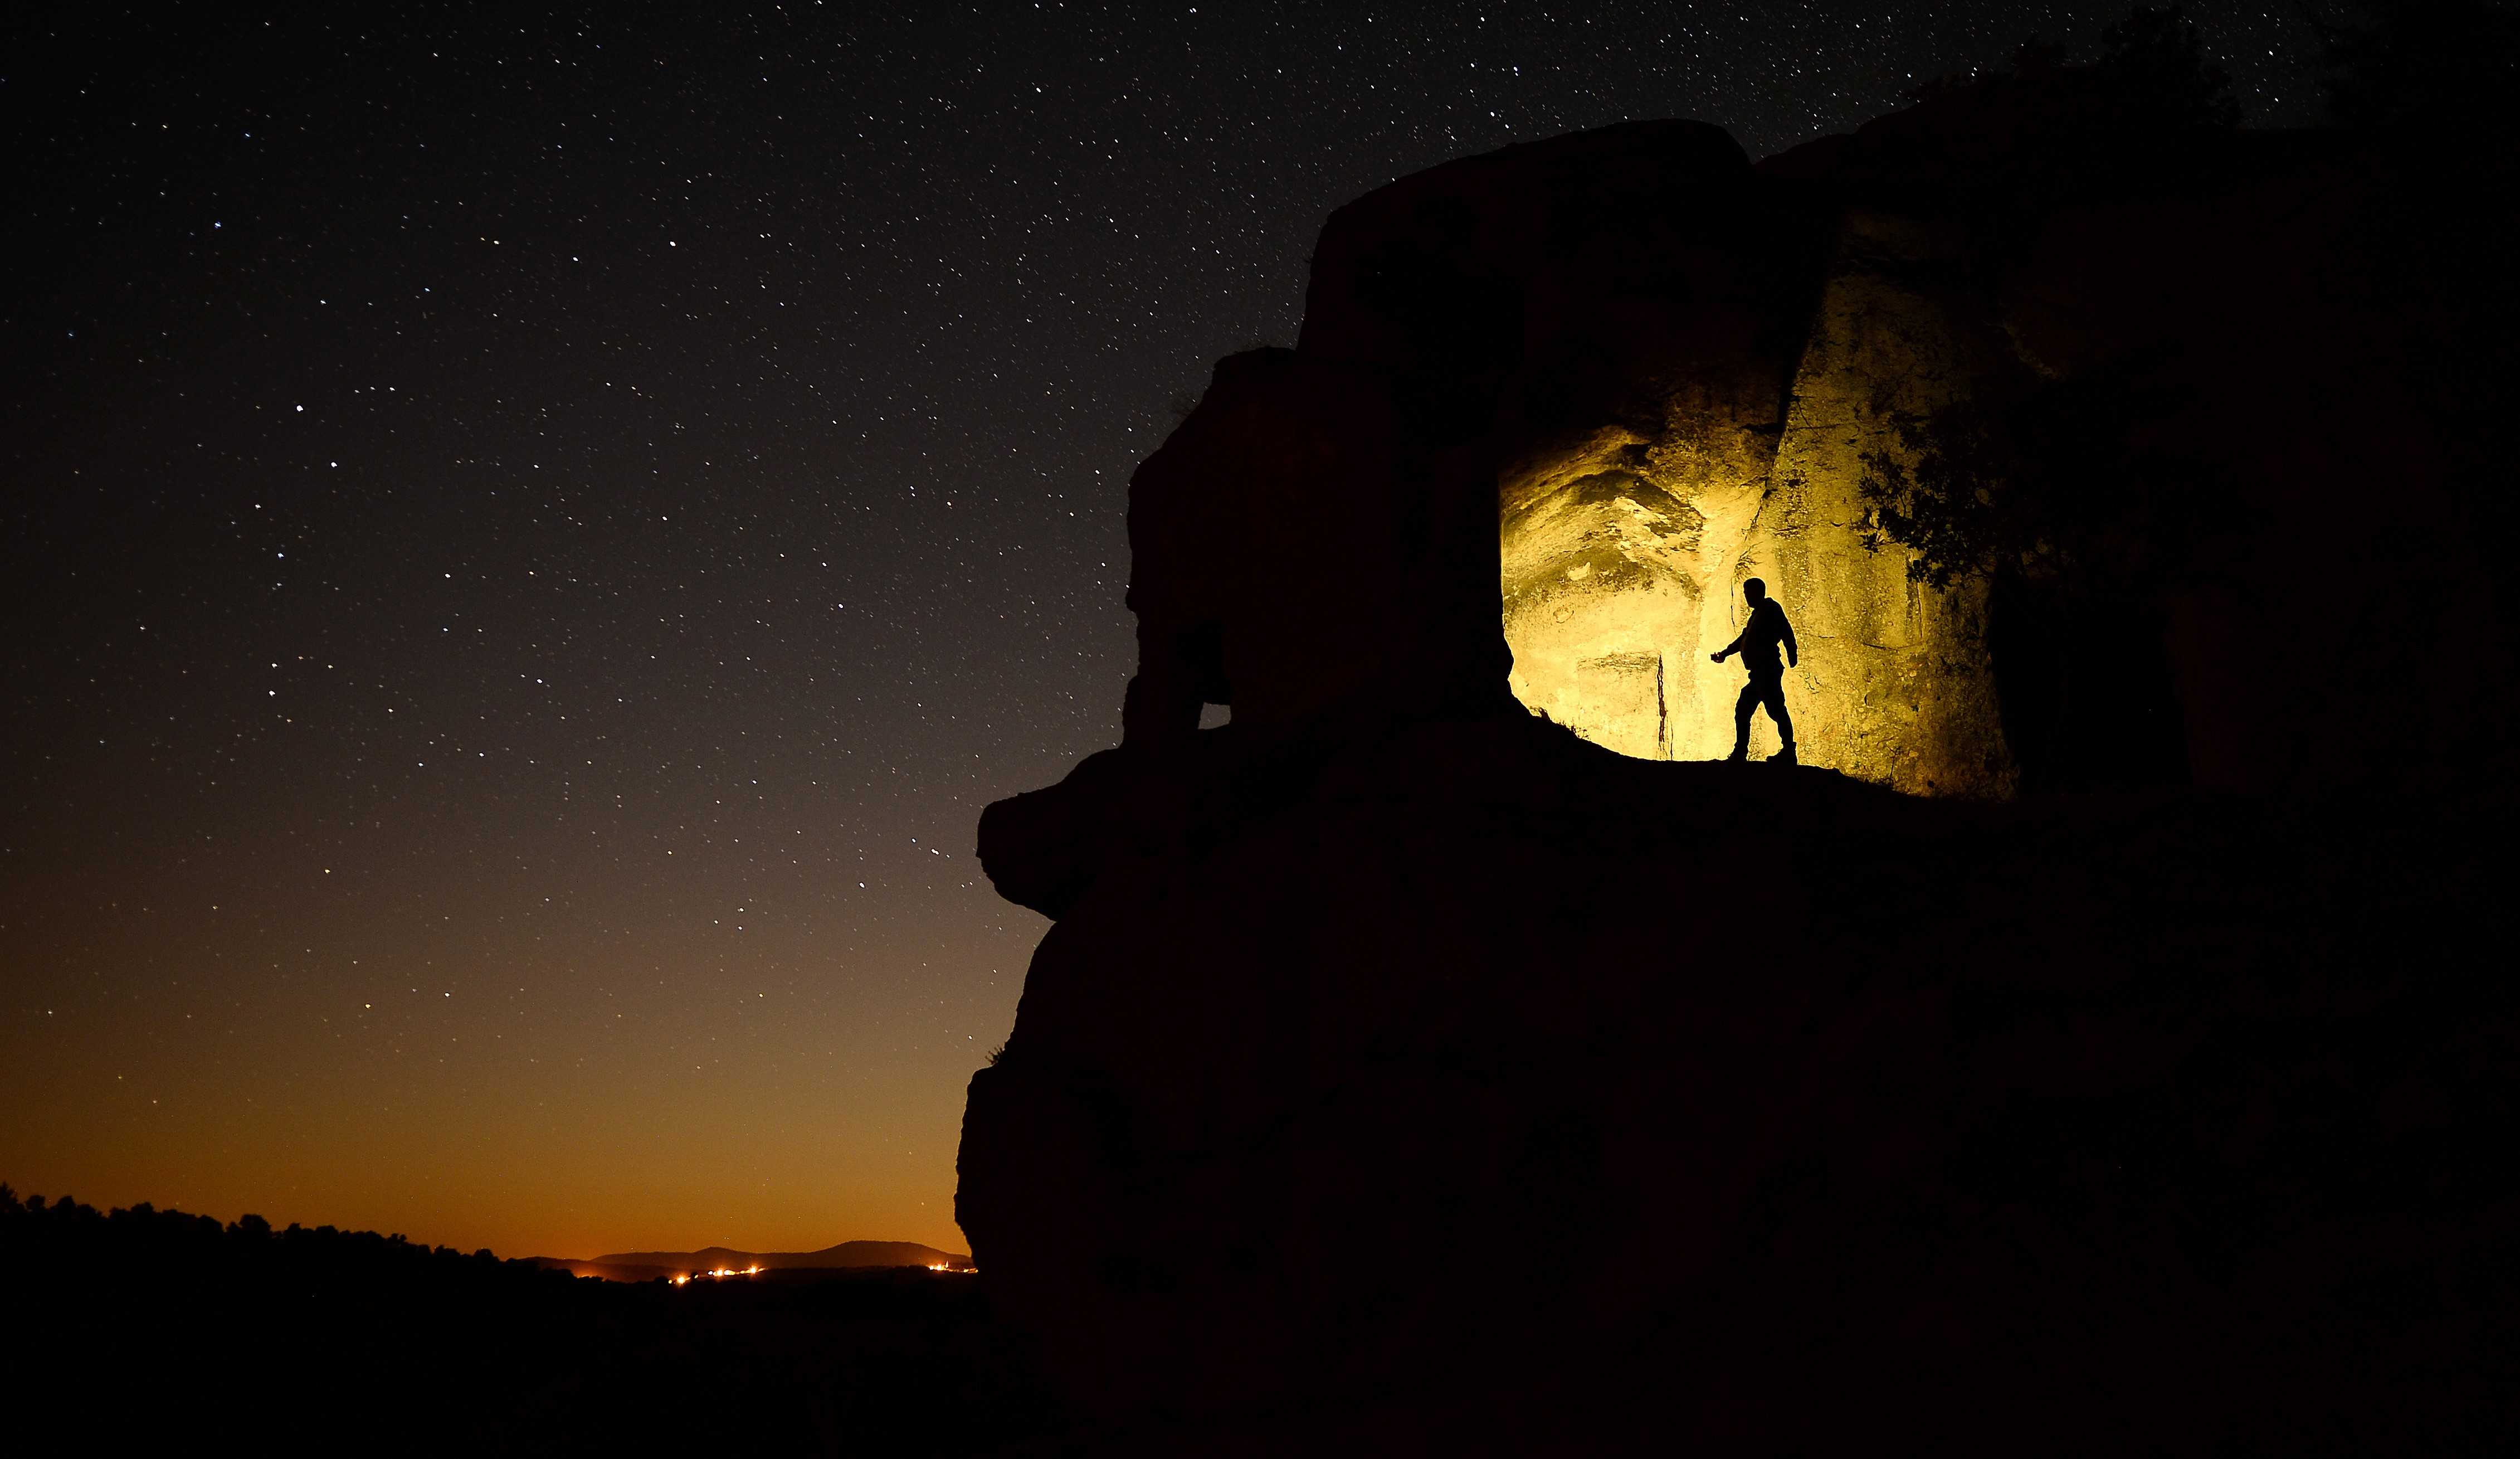 Silhouette of a man standing on a rock outcropping with a clear night sky over the ancient city of Mesotimolos in Turkey, August 13, 2019.